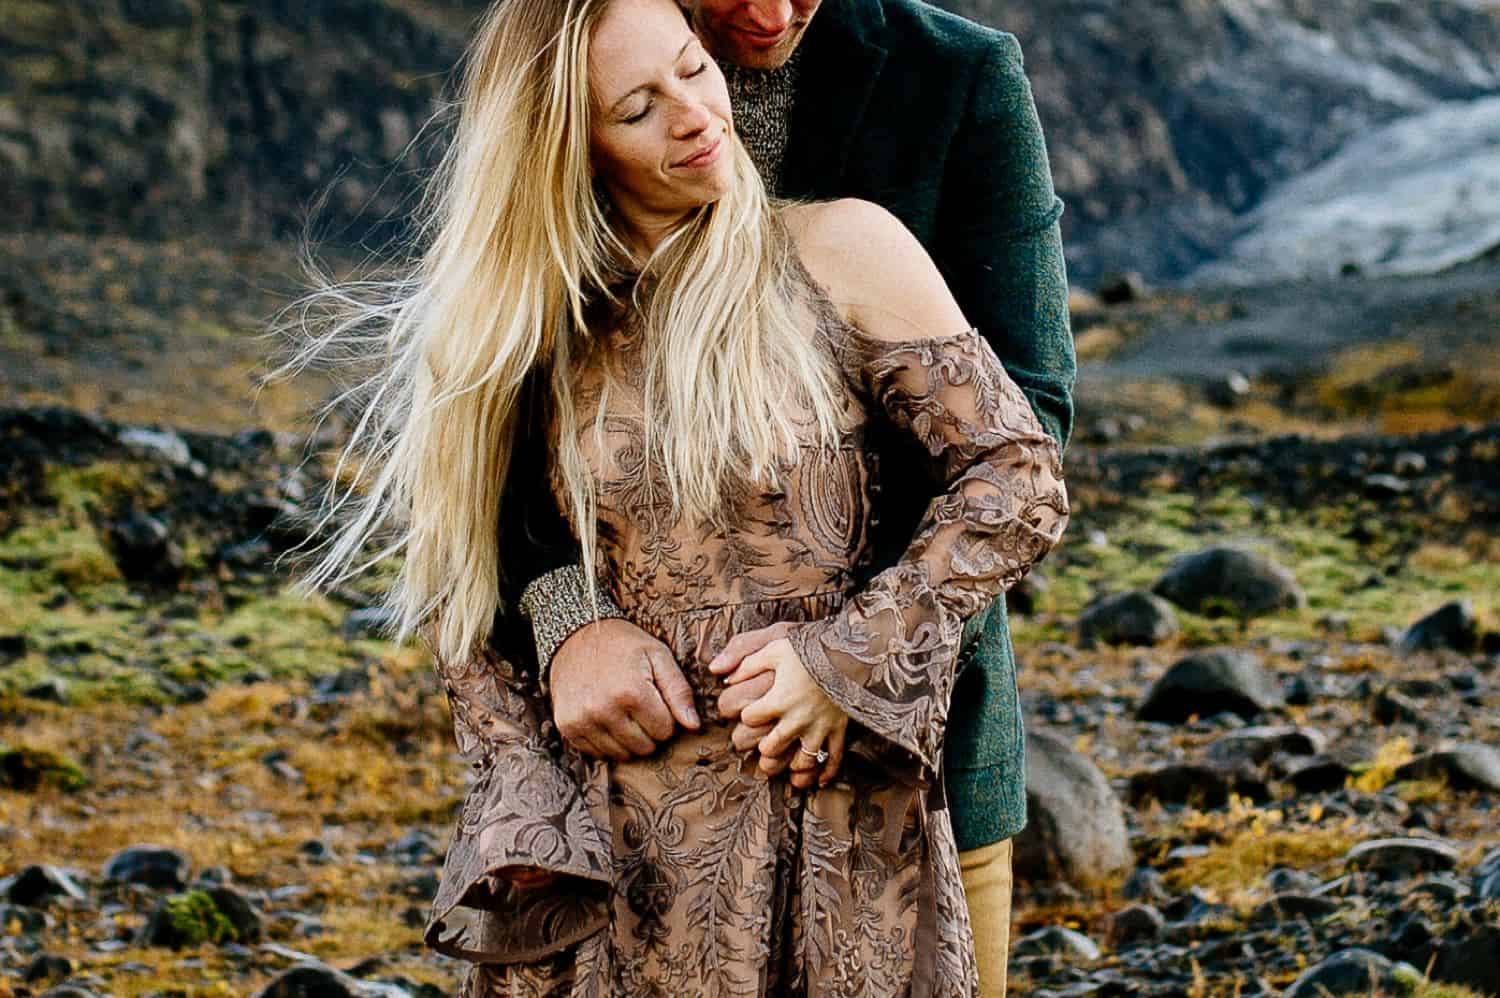 Woman in a brown lace dress is embraced from behind by a man in a green velvet jacket. Only the woman's face is shown.